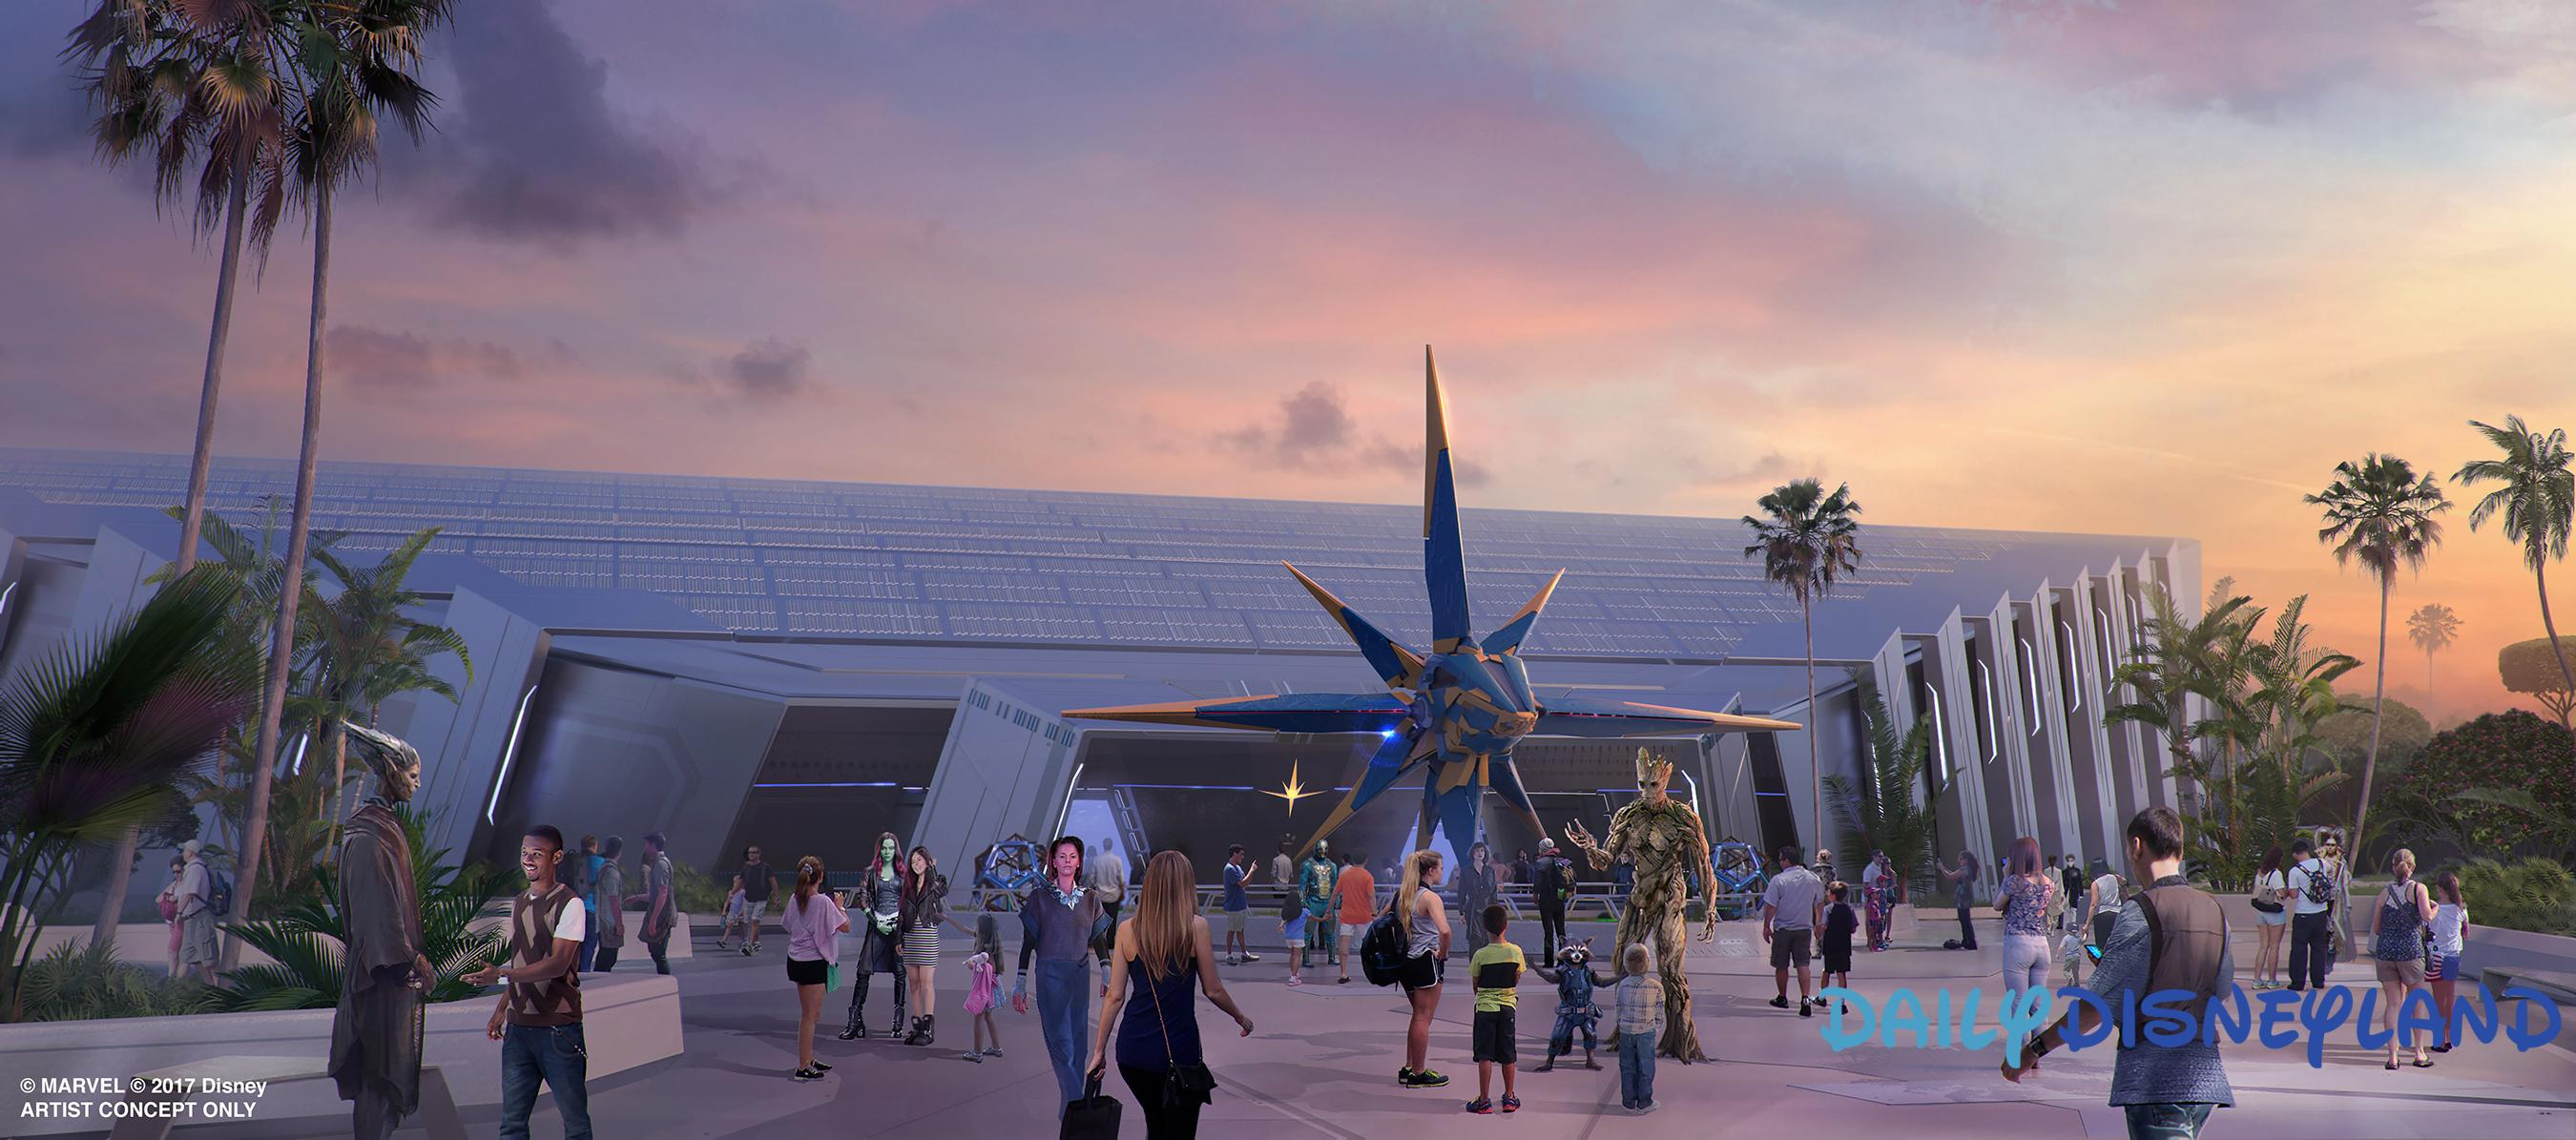 L'attraction des Gardiens de la Galaxie d'Epcot, concept-art